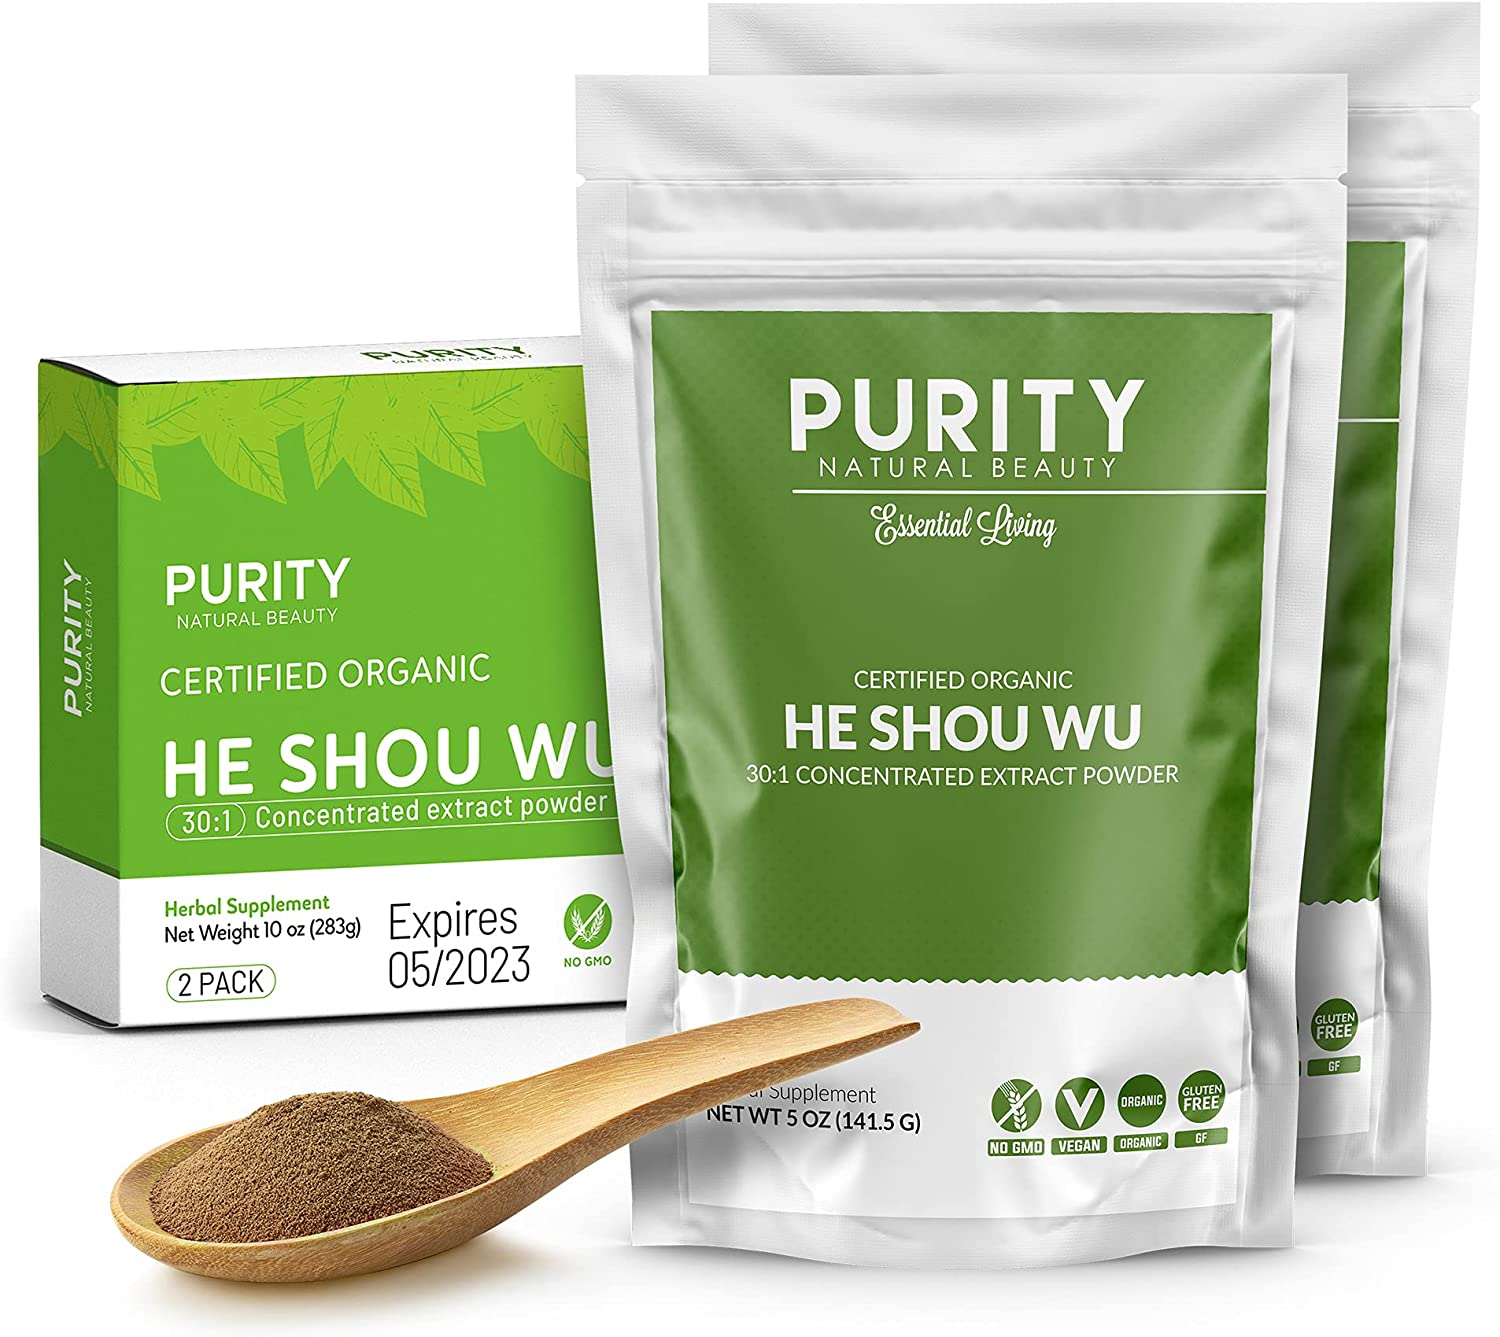 Certified Organic He Shou Wu Mail order Max 60% OFF - Bag Concentrate of 5oz Large 30:1